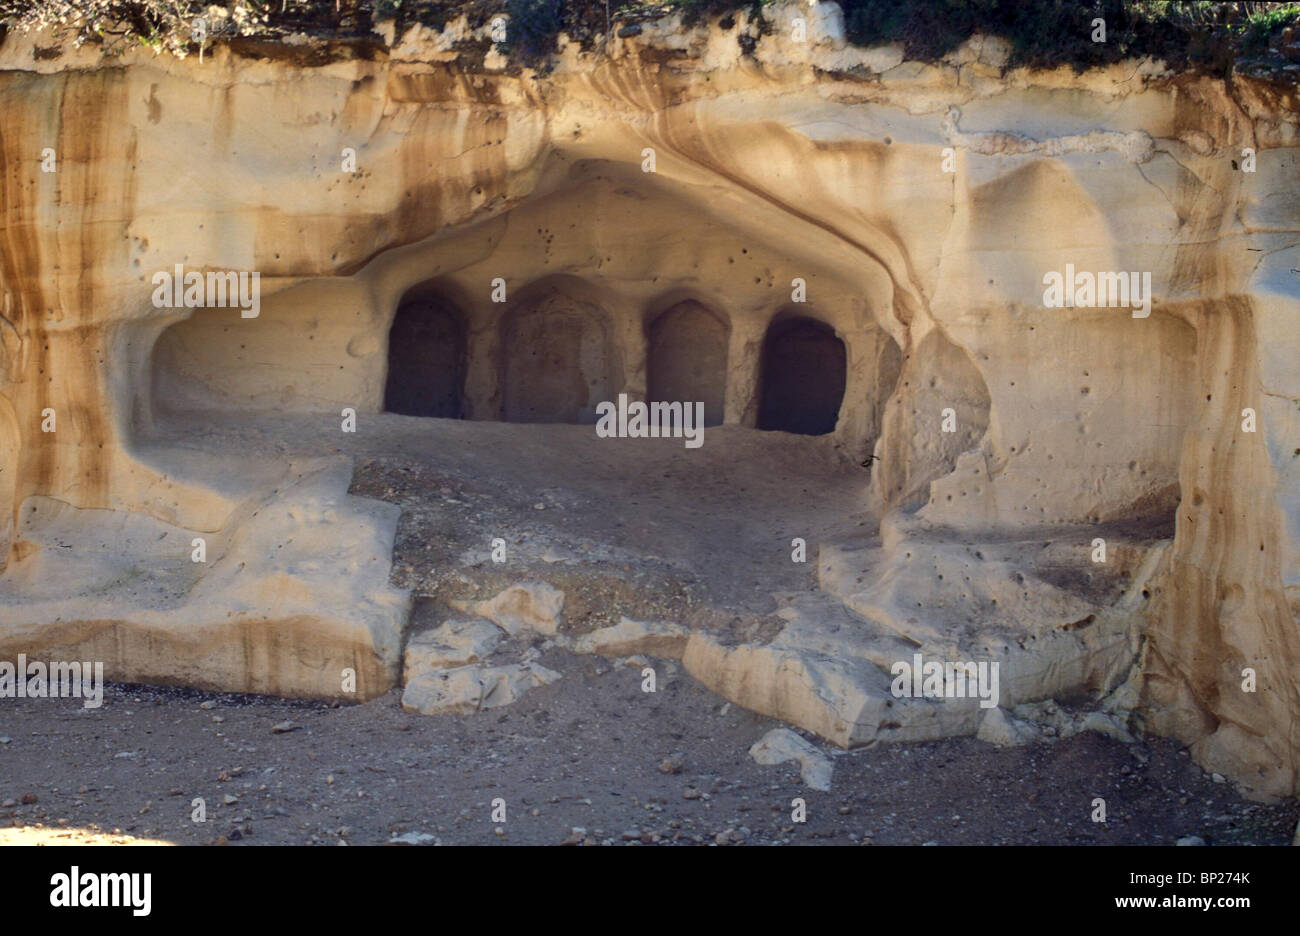 1466. MARESHA, GROUP OF BURIAL CAVES NORTH OF THE TEL - Stock Image